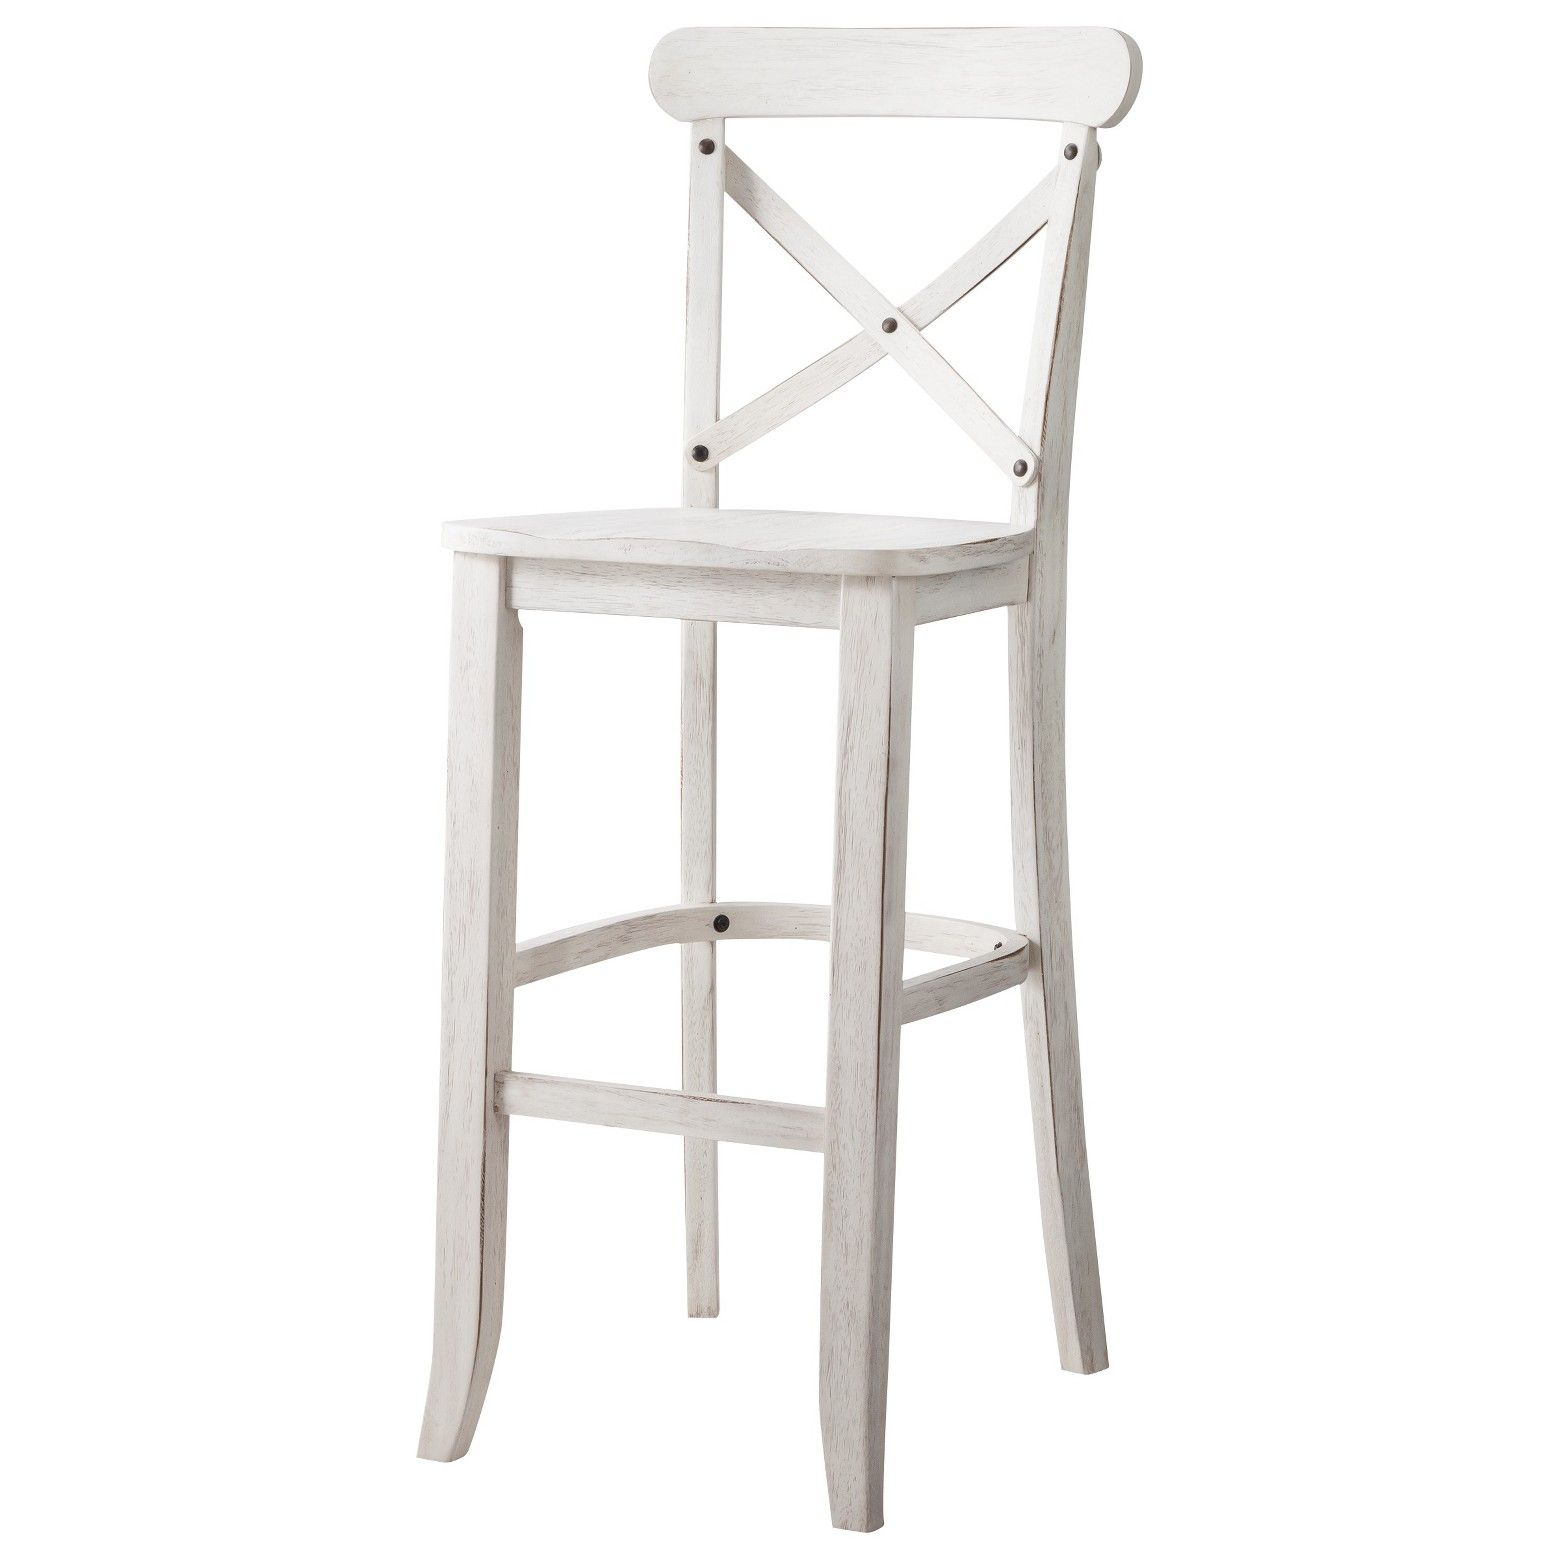 Add A Rustic Touch To Your Kitchen Or Dining Area With A French Country Chair This High Wood Chair H Bar Stools Farmhouse Bar Stools Counter Stools With Backs